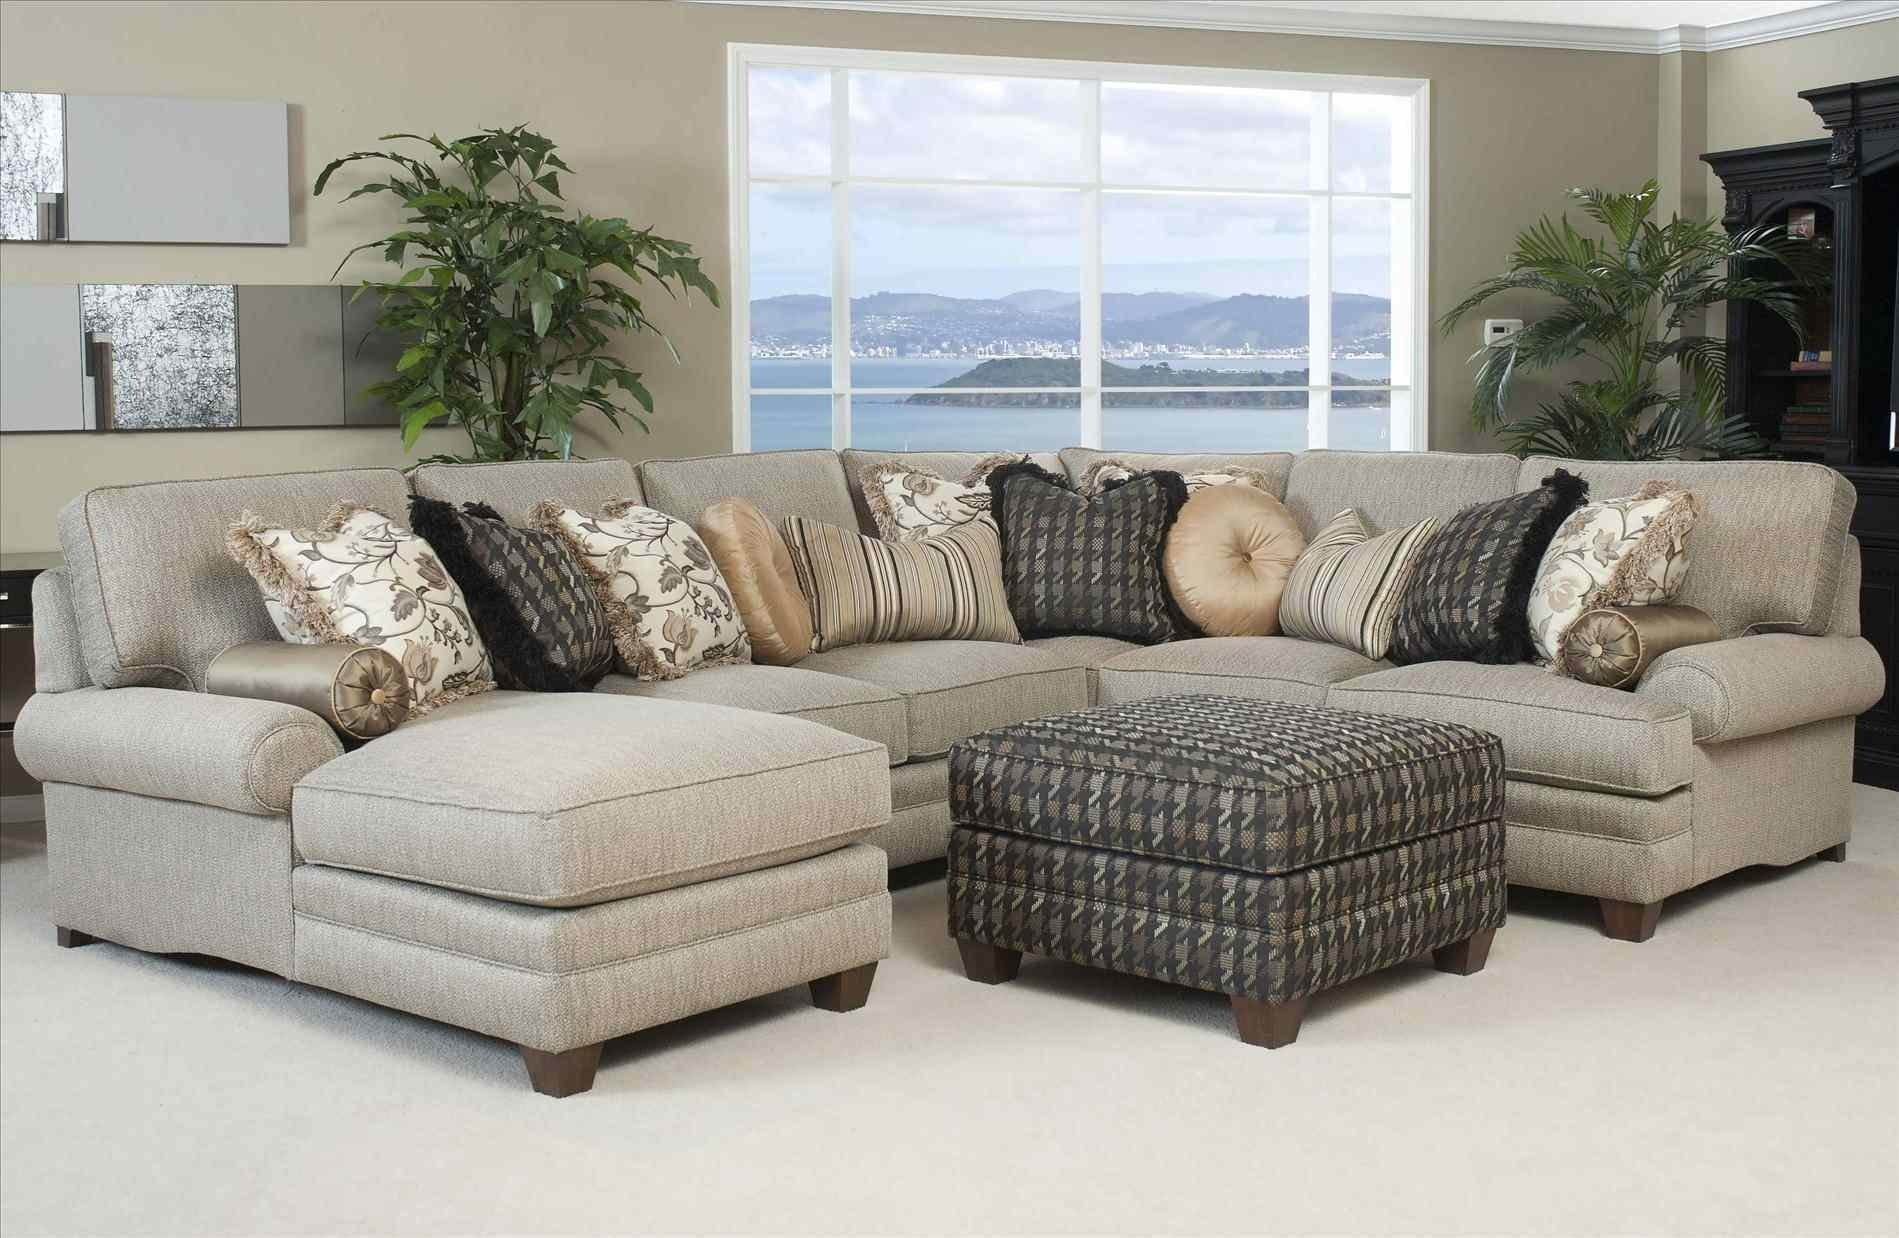 Couch : Furniture Bad Boy Sectional Es Wrap Around Couch Furniture Inside Sectional Sofas At Bad Boy (View 6 of 15)